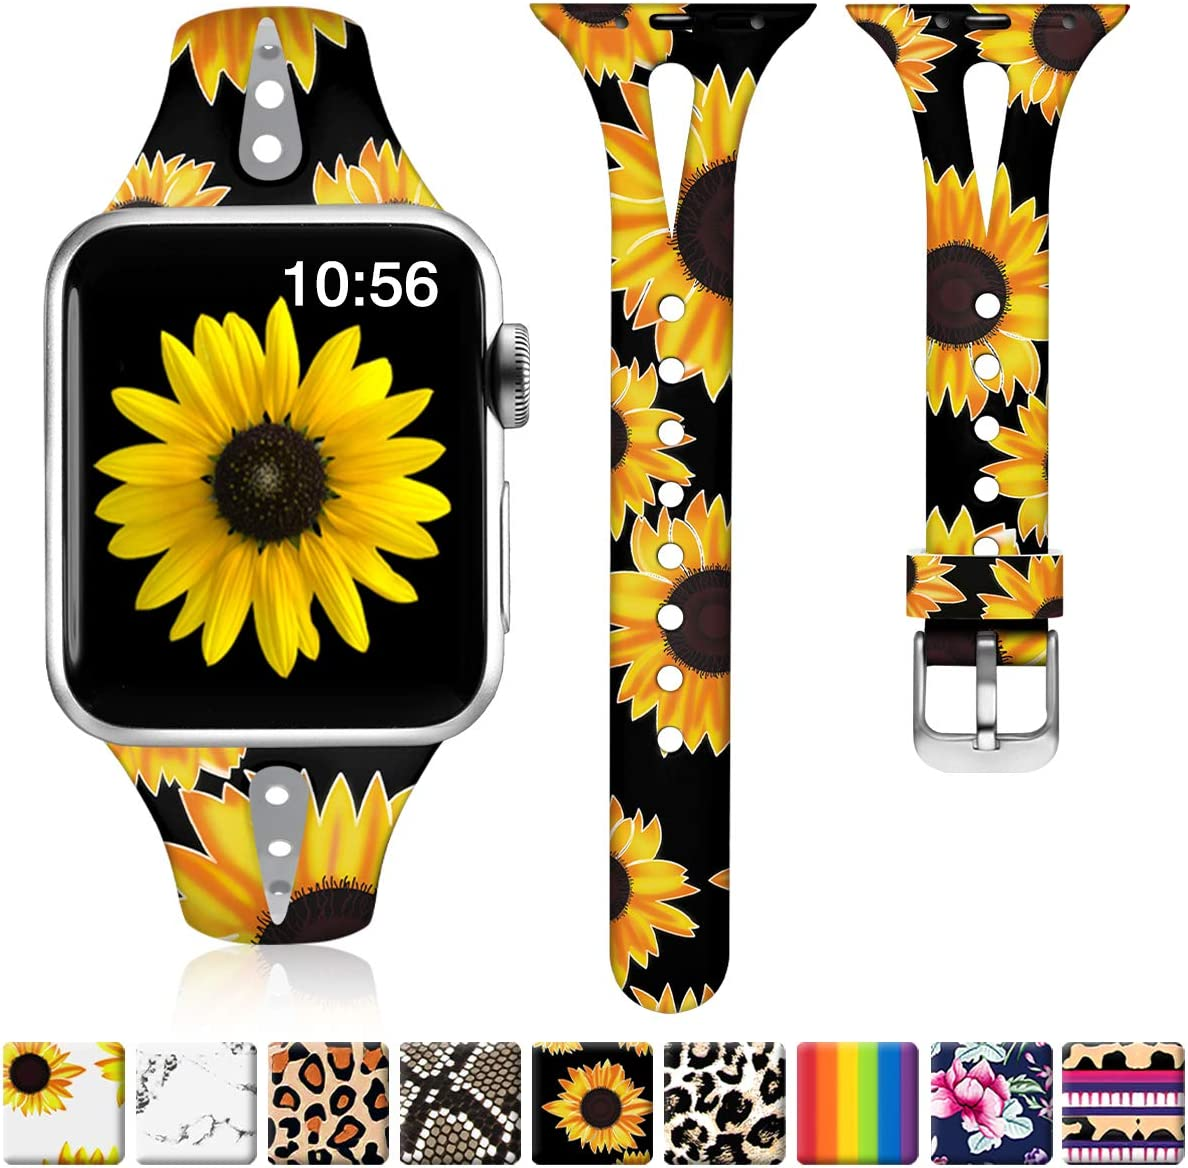 ZAROTO Sunflower Bands Compatible for Apple Watch Series 6 Series 5/4 44mm Women, 42mm iwatch bands for Apple Watch SE, Series 3 2 1, Cute Slim Soft Silicone Narrow Print Wristband S/M Black Sunflower